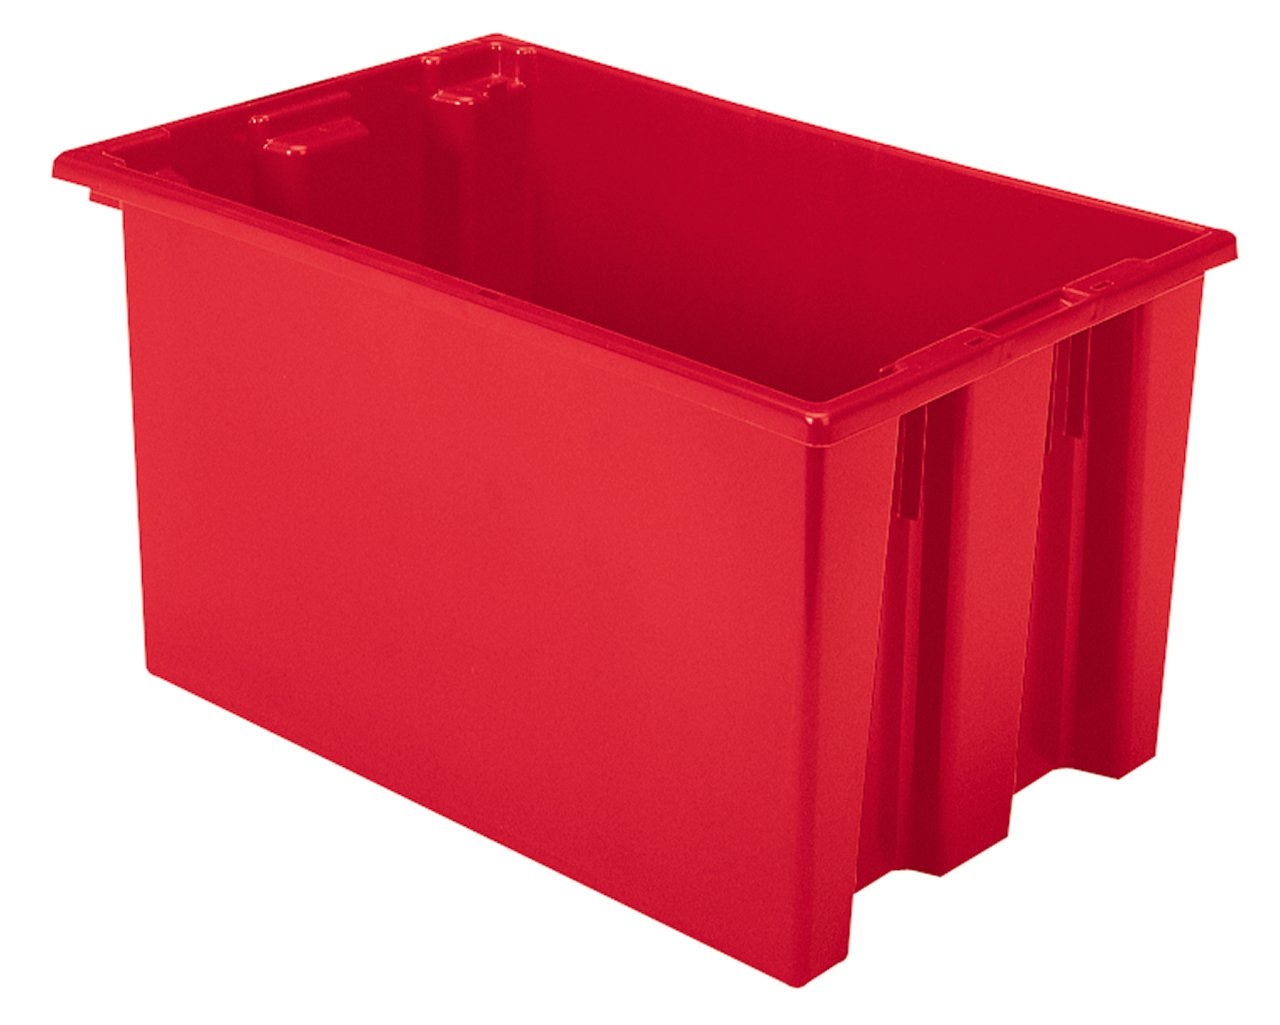 Akro-Mils 35240 Nest and Stack Plastic Storage and Distribution Tote, 23.5-Inch L by 15.5-Inch W by 12-Inch H, Red, Case of 3